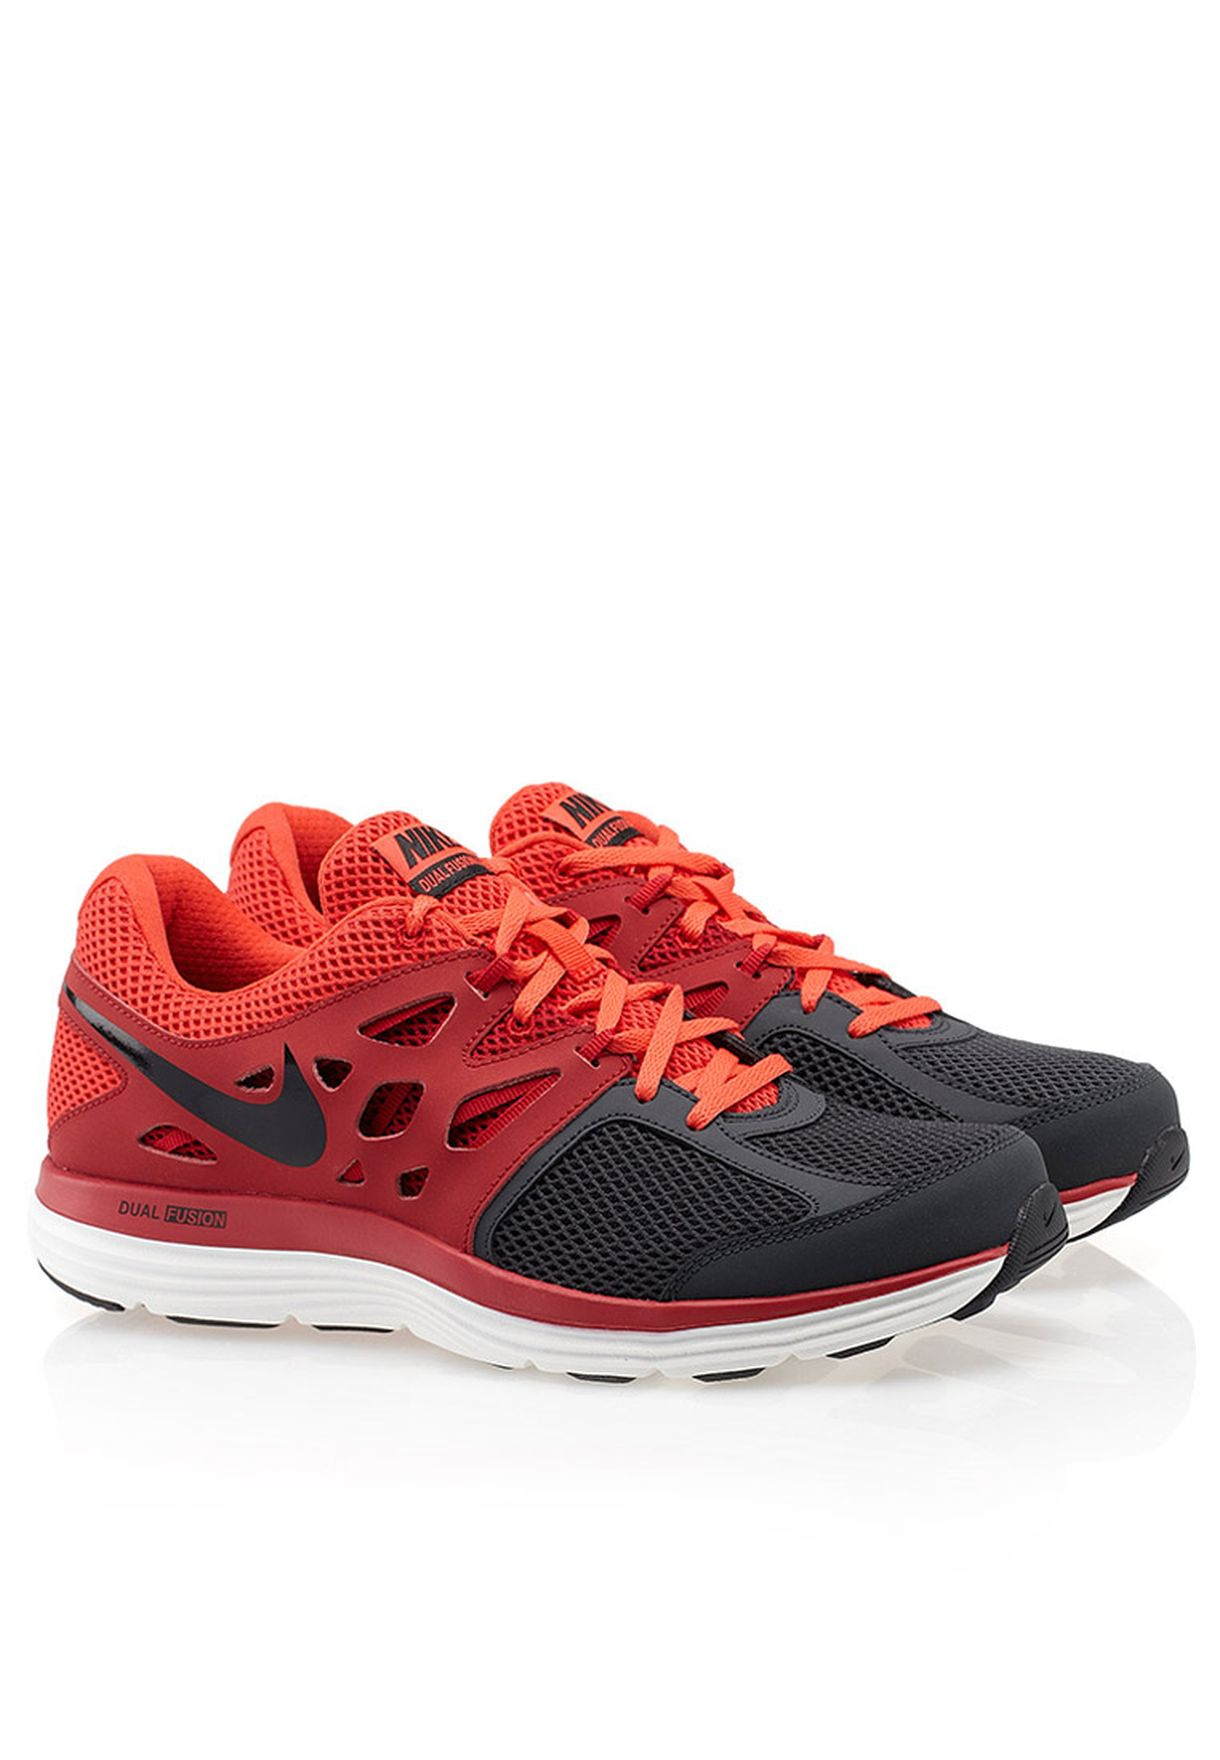 Shop Nike red Nike Dual Fusion LITE 599513-601 for Men in Saudi ... 5ba31e80baf3